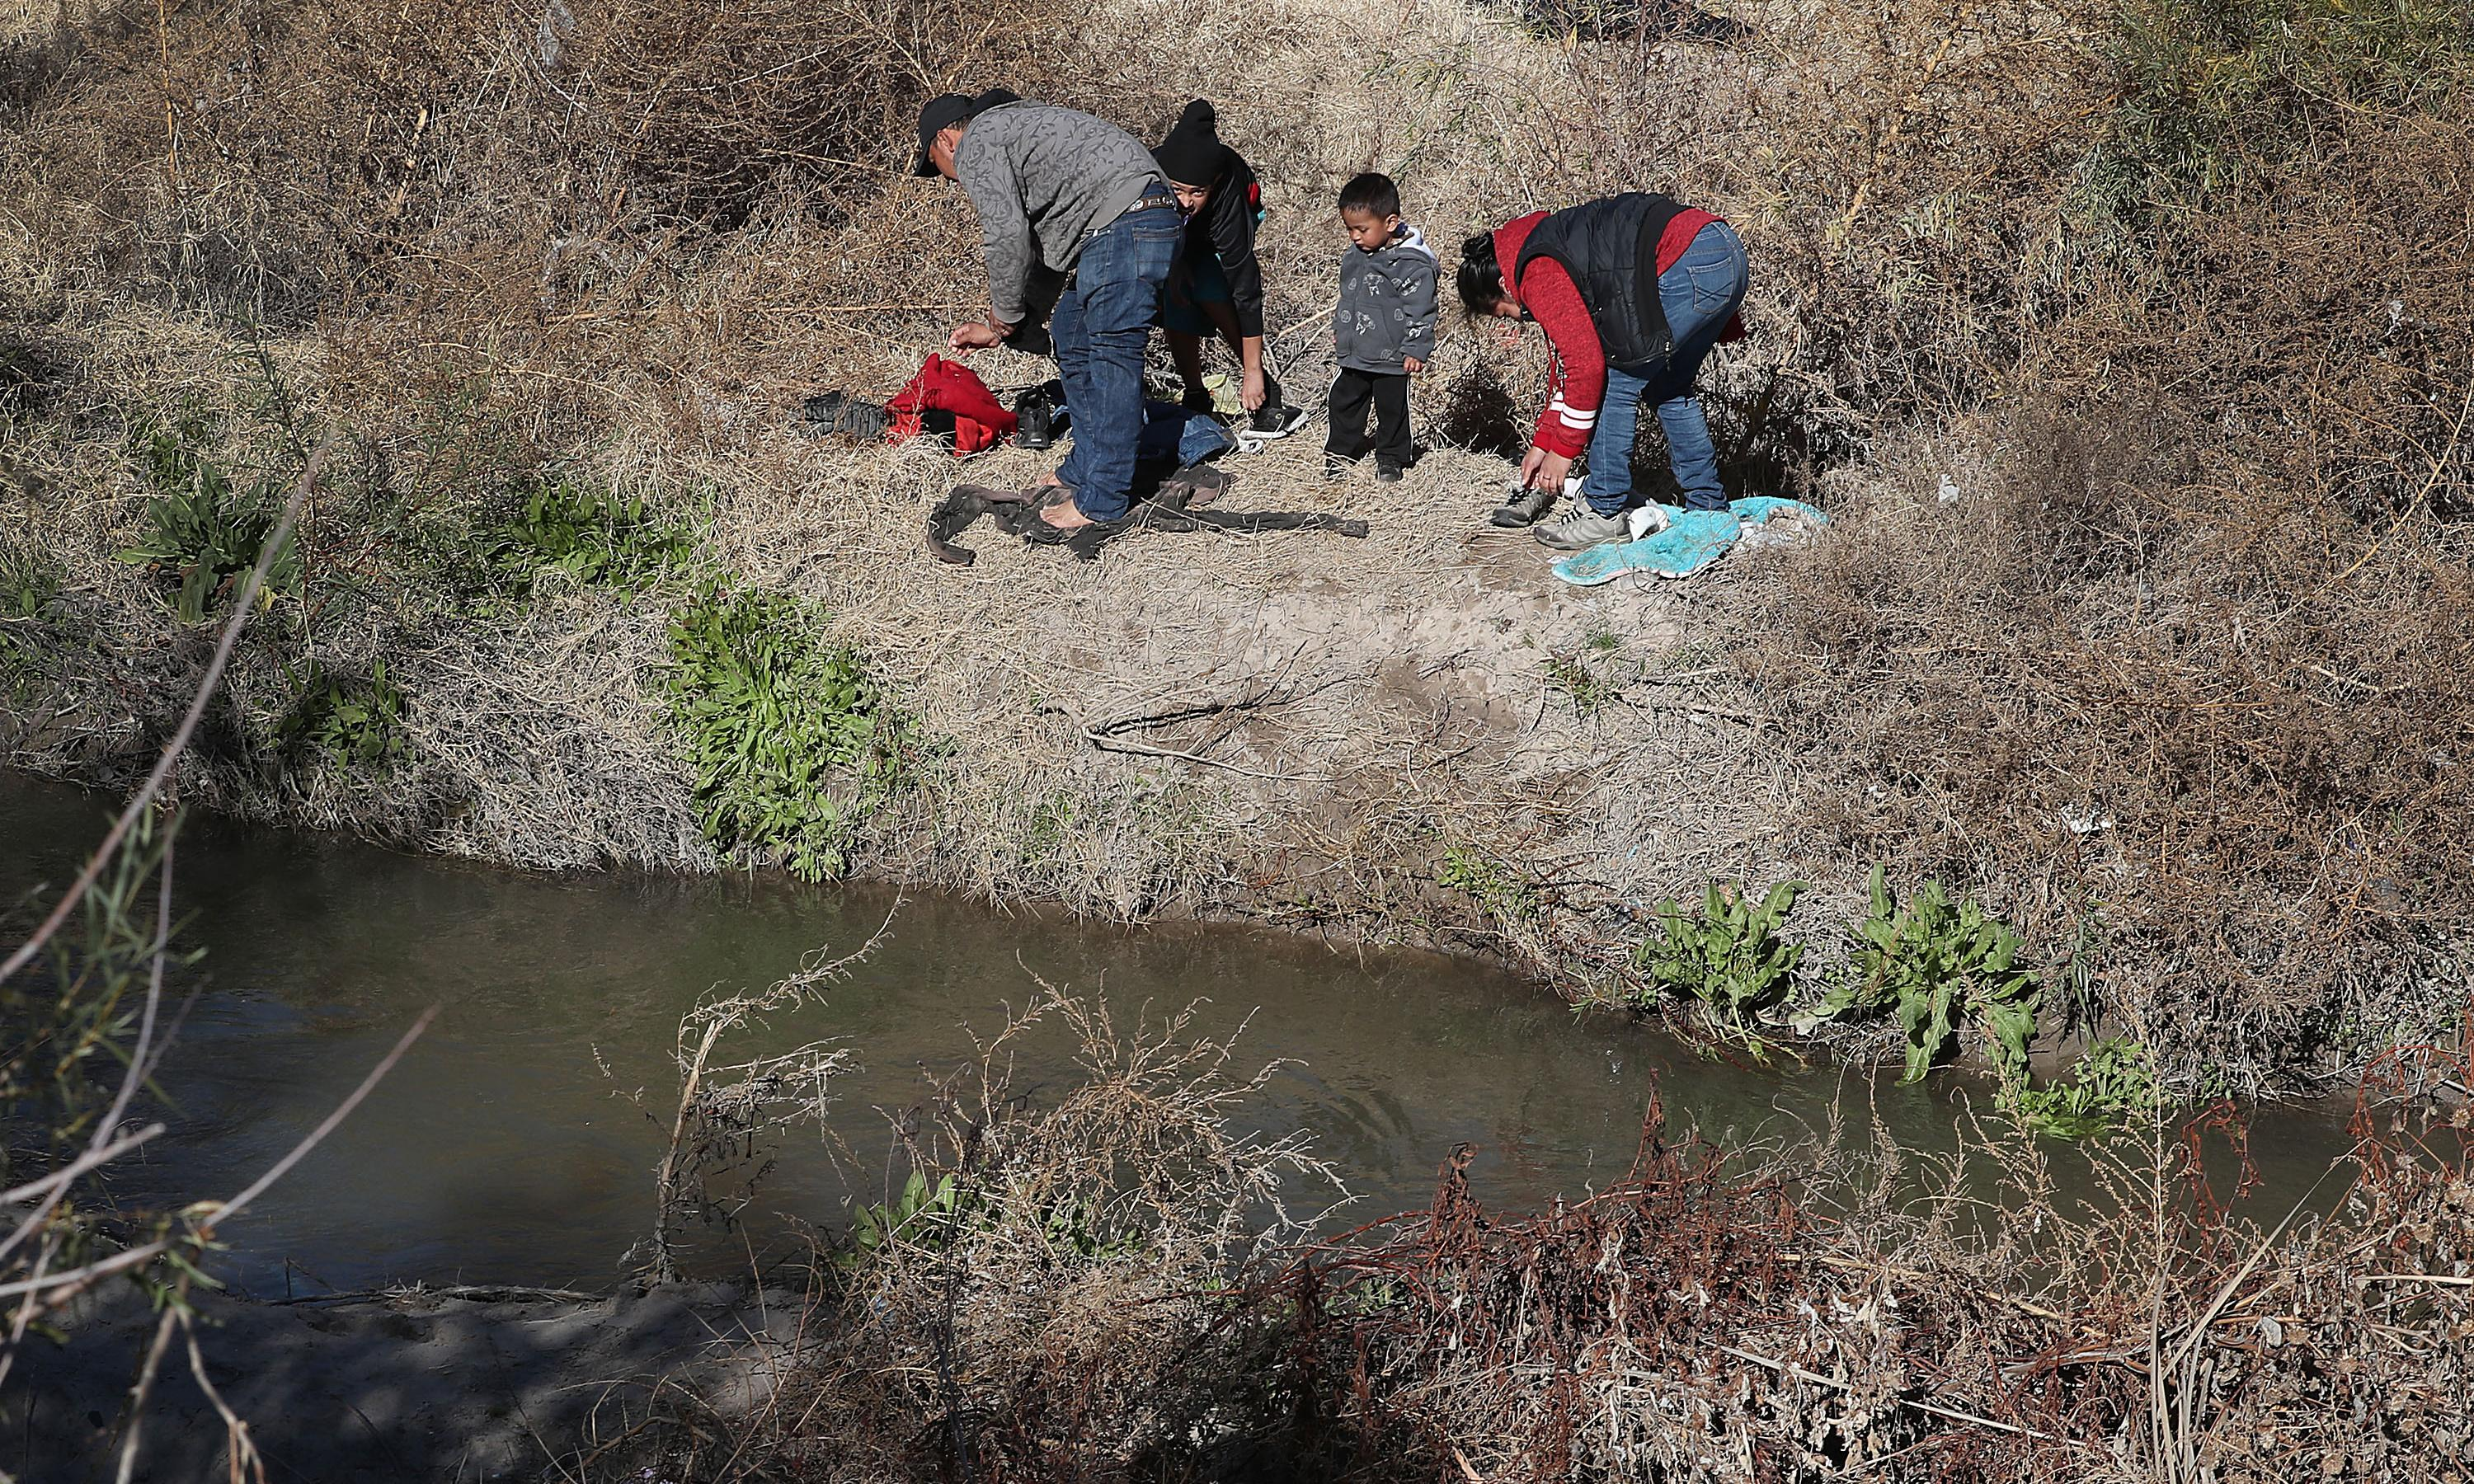 'The river is treacherous': the migrant tragedy one photo can't capture